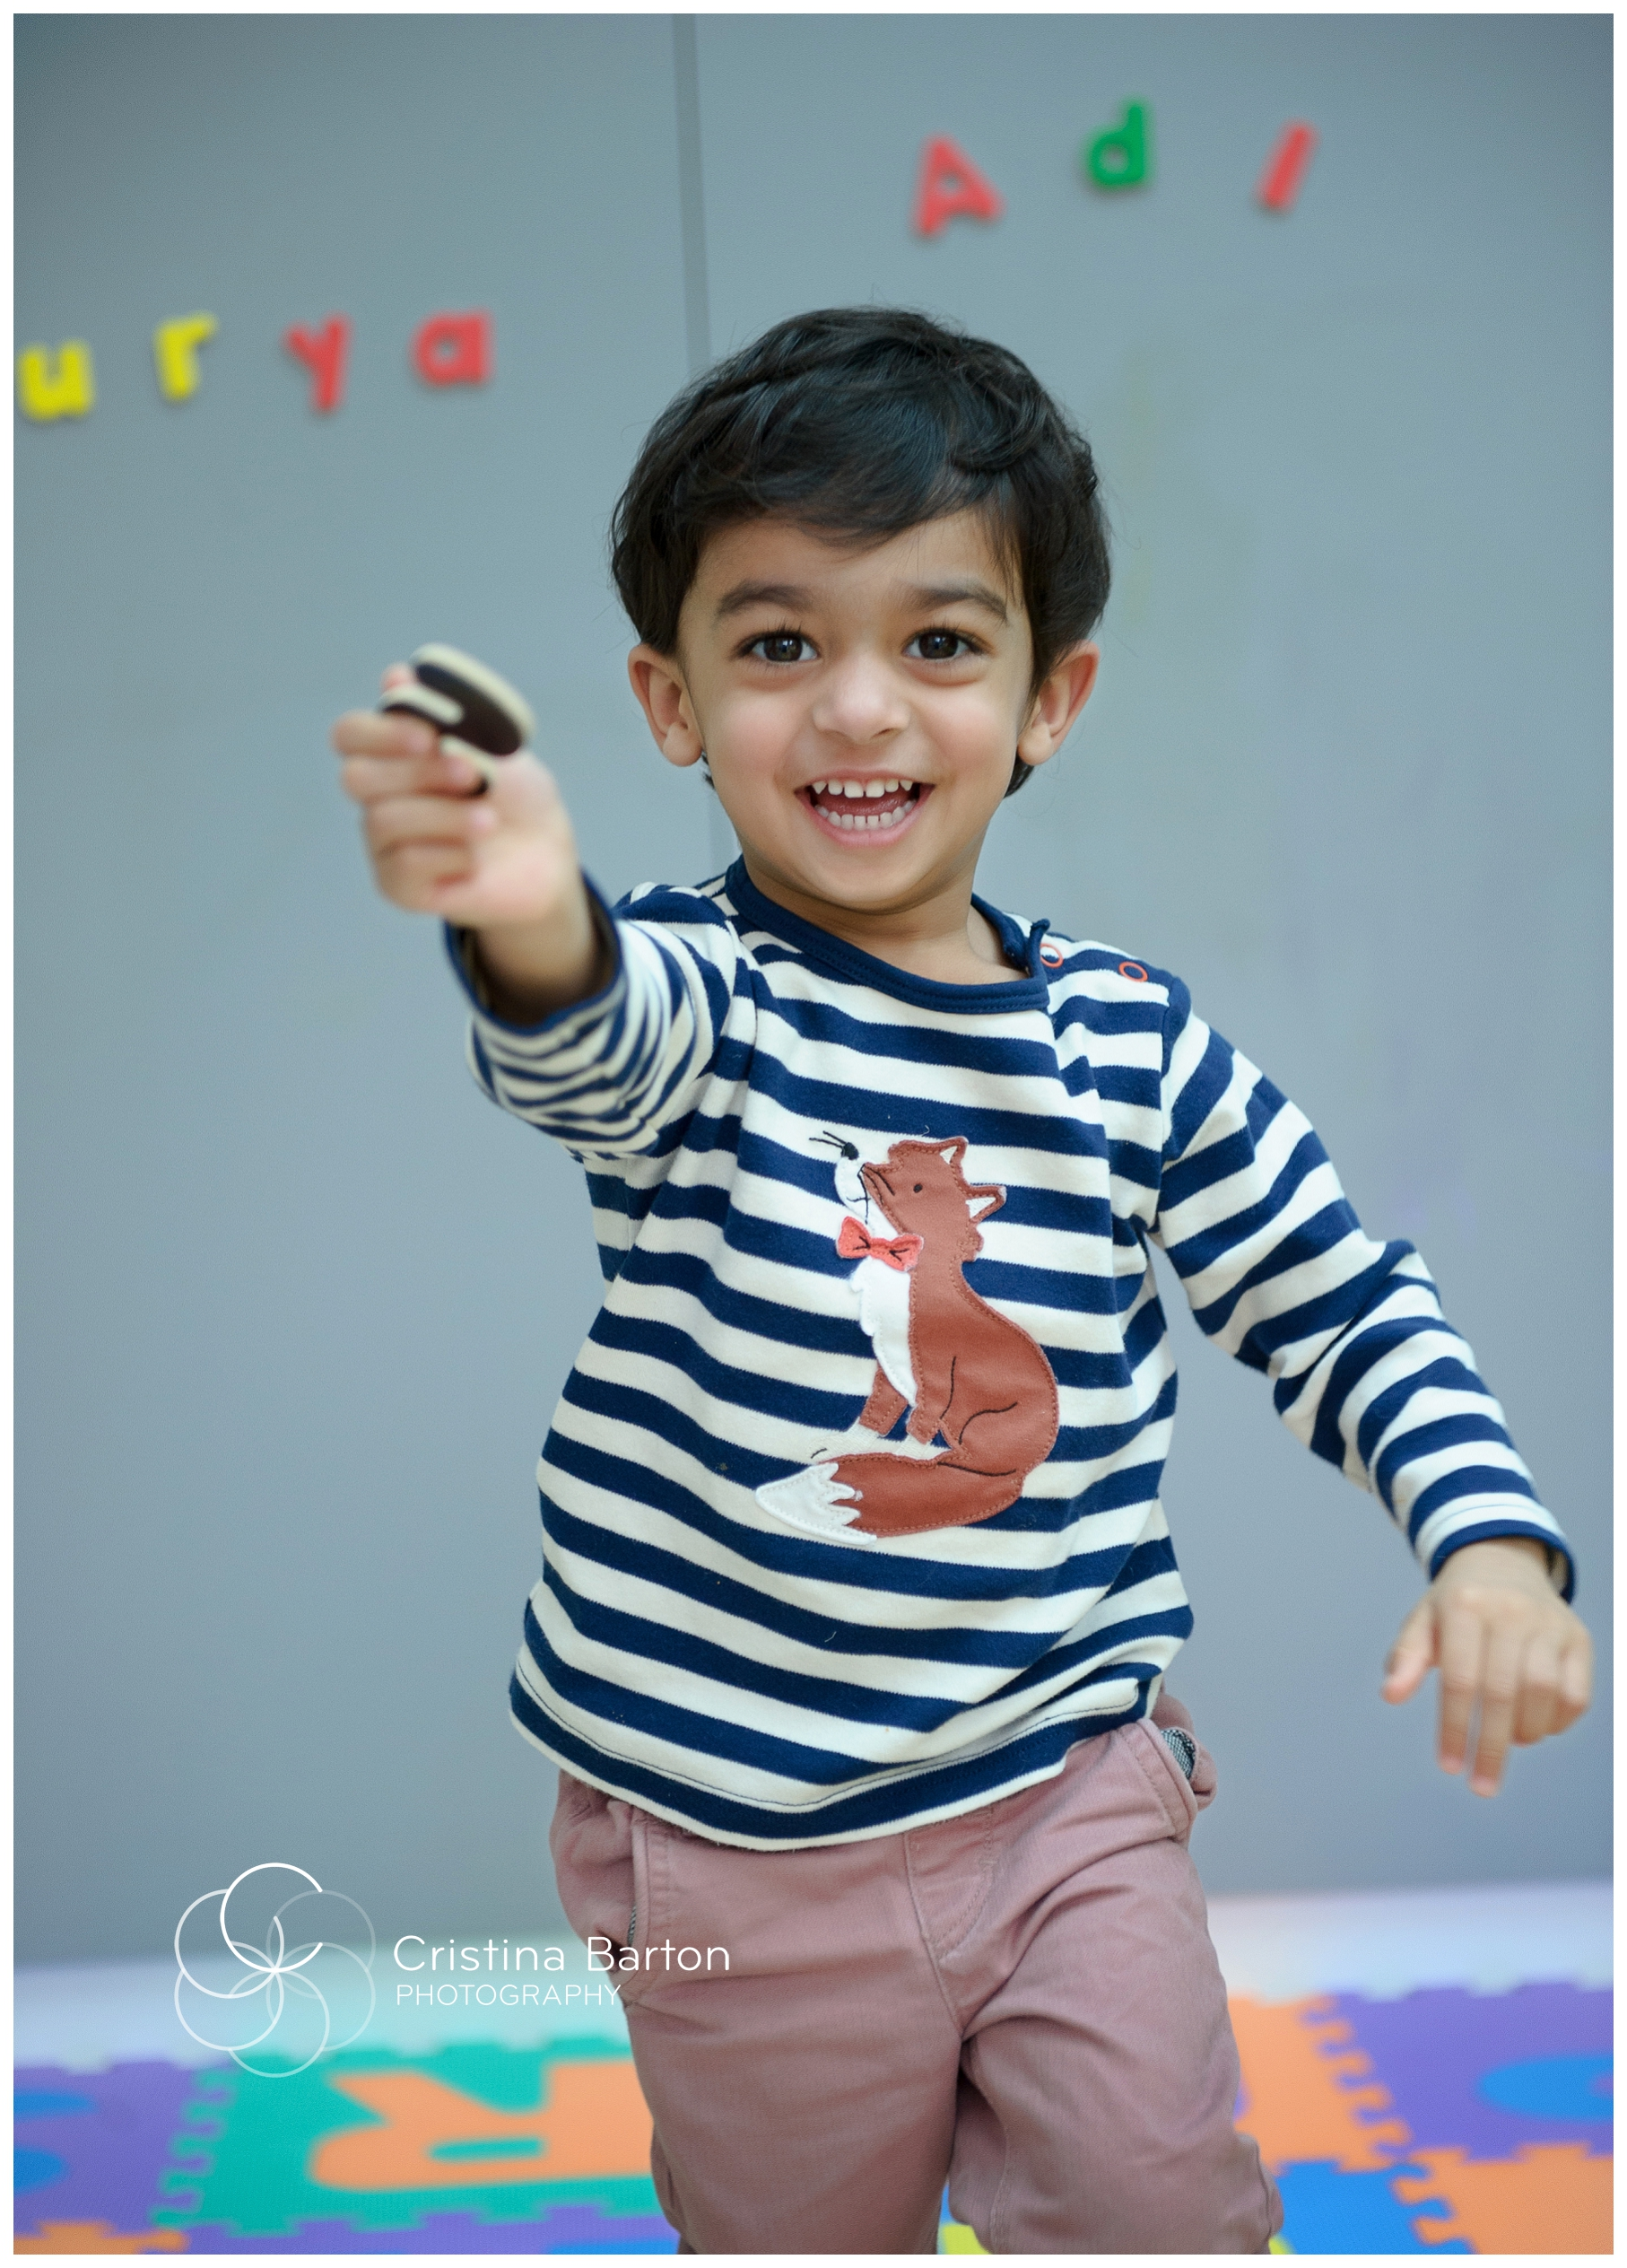 Natural children's photography in London